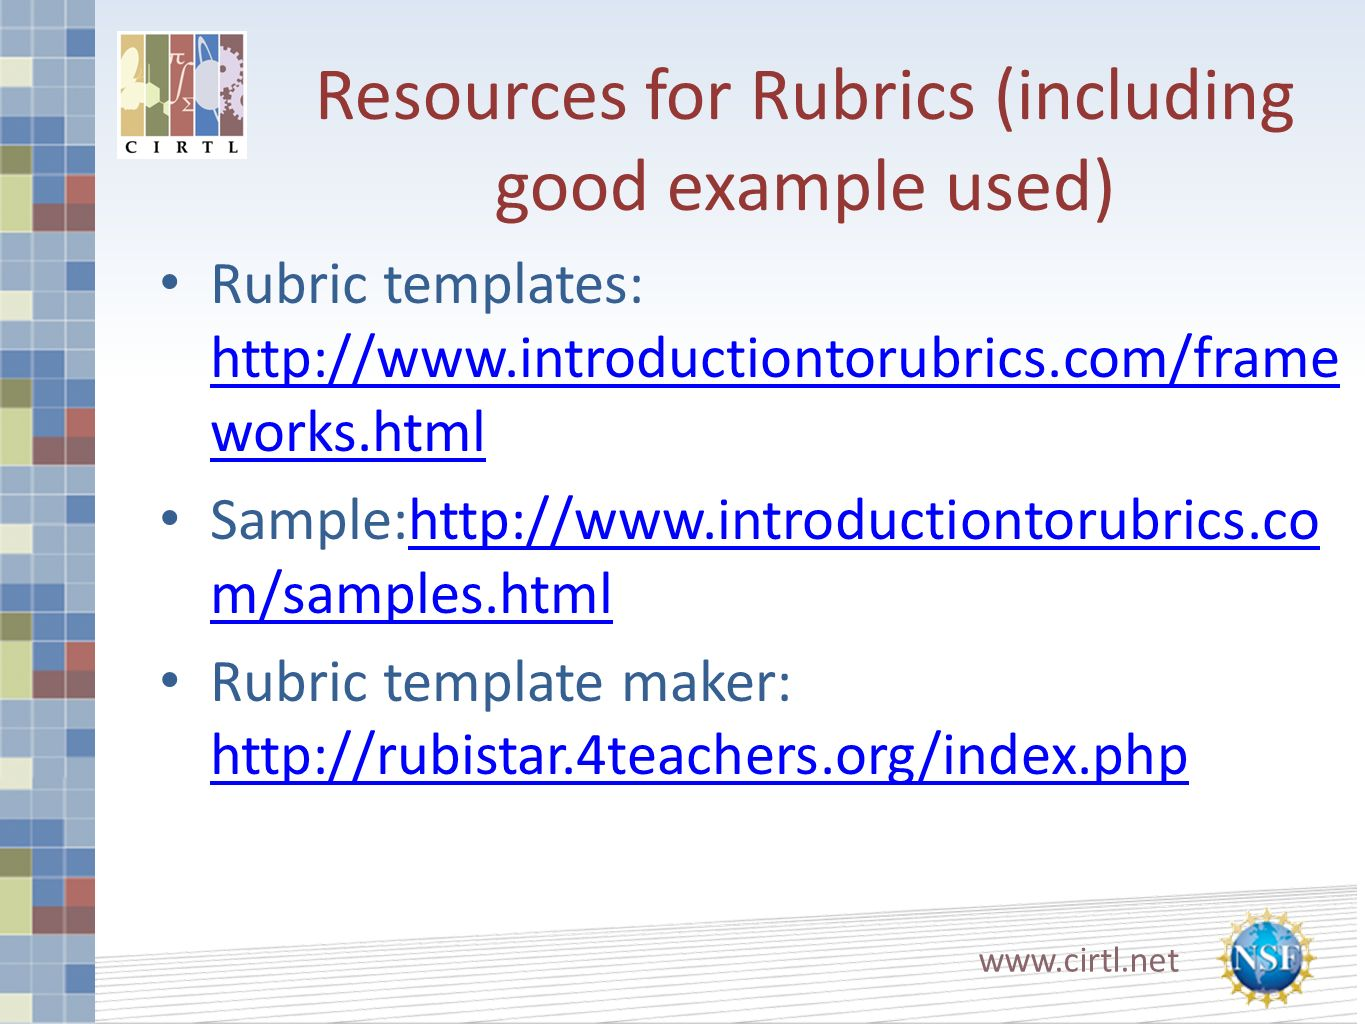 rubric template maker - welcome to teaching in the us ppt download